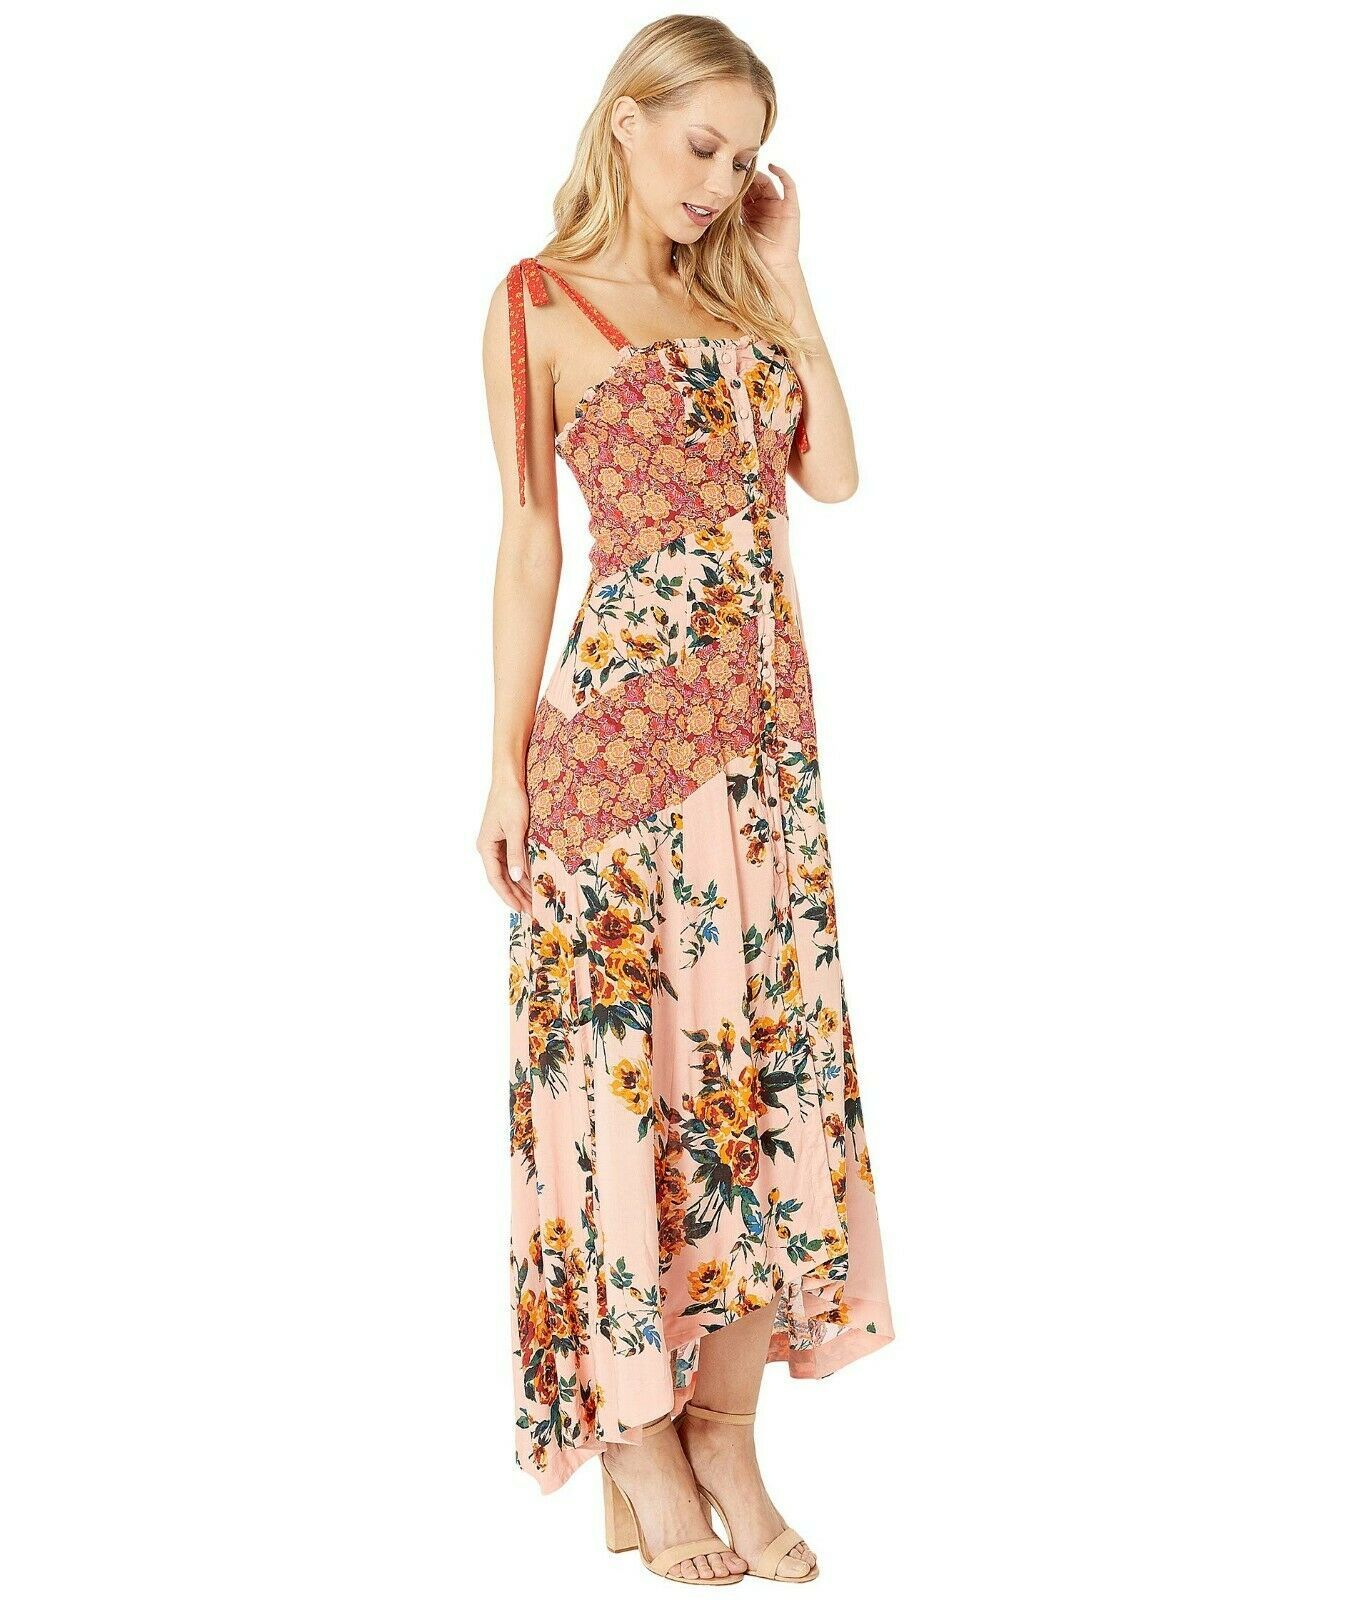 Free People Lover Boy Floral Print Button Front Maxi Dress MSRP: $148.00